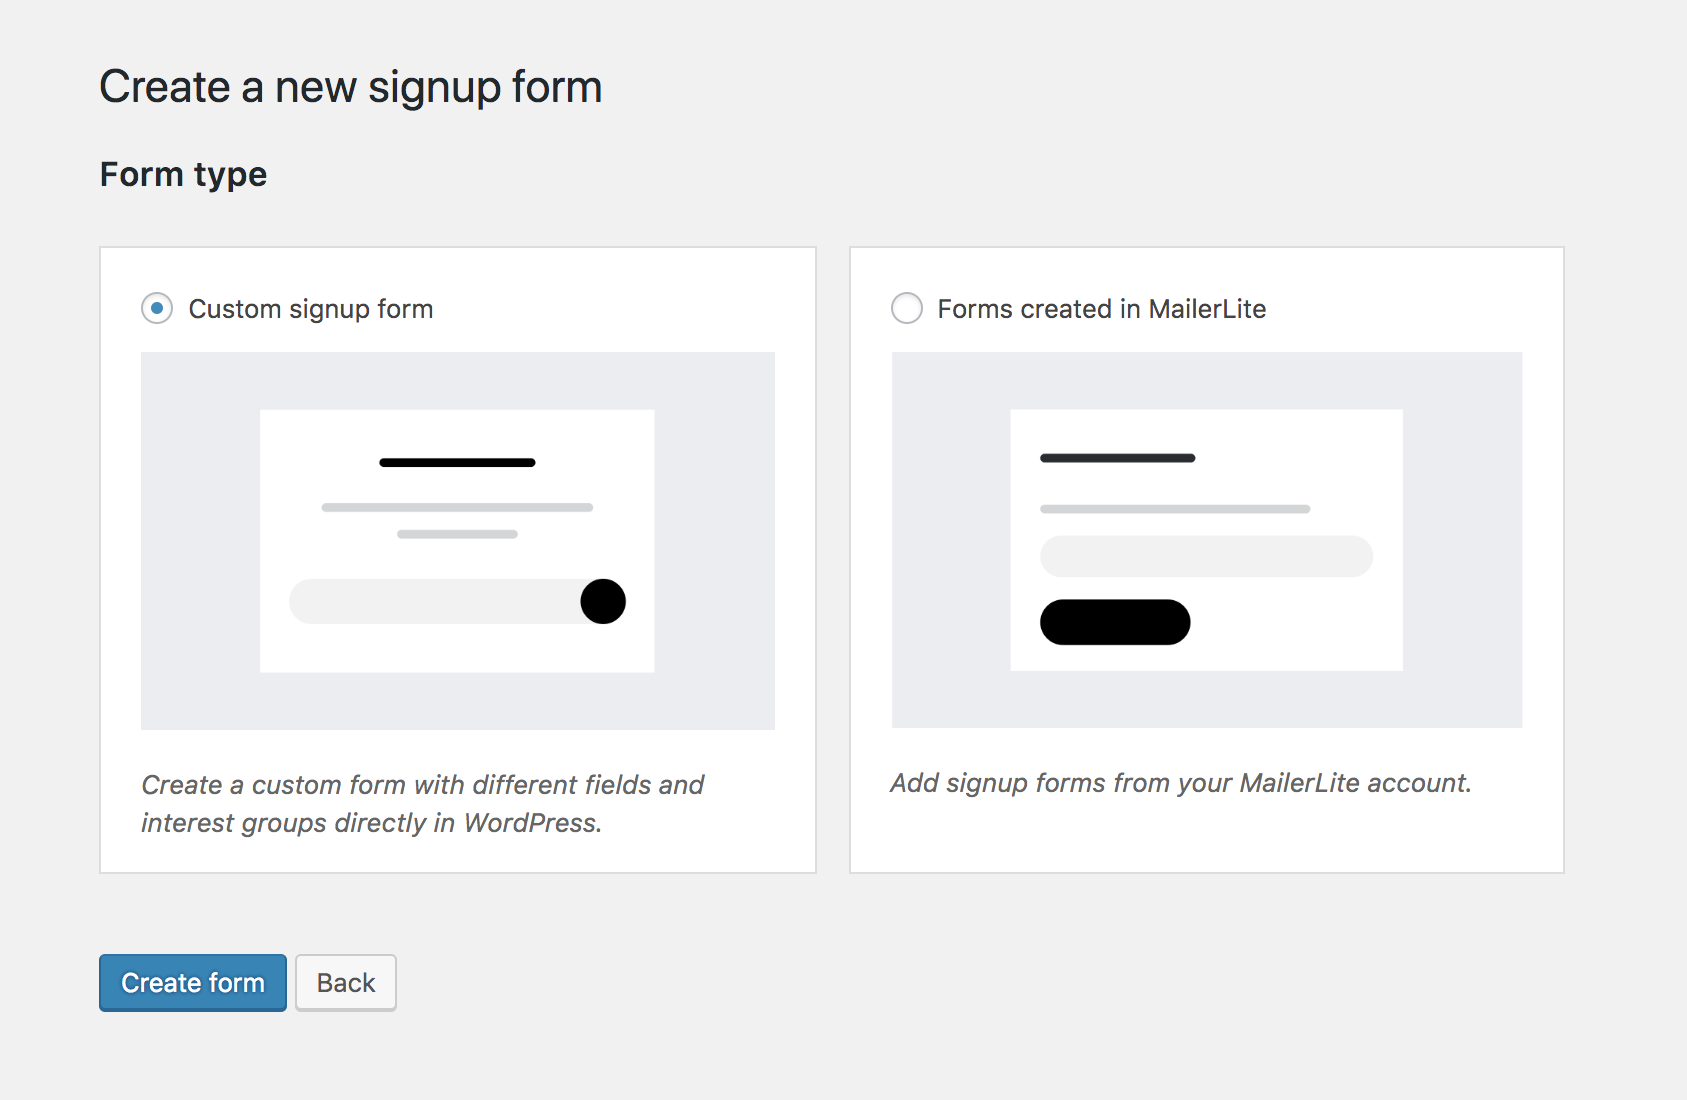 MailerLite - How to create a custom signup form using